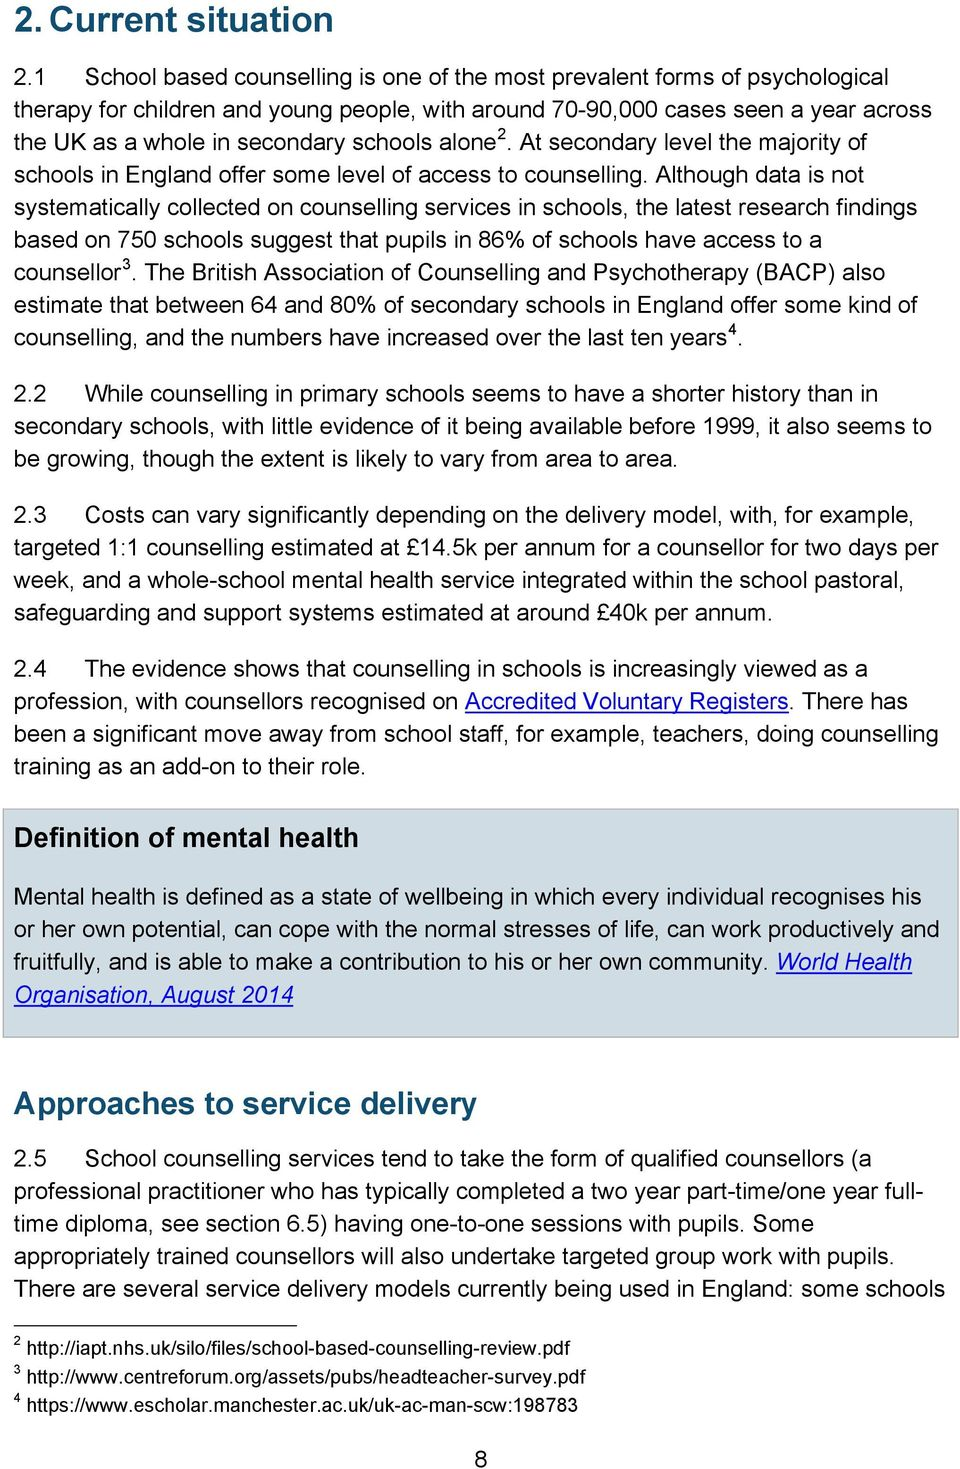 schools alone 2. At secondary level the majority of schools in England offer some level of access to counselling.